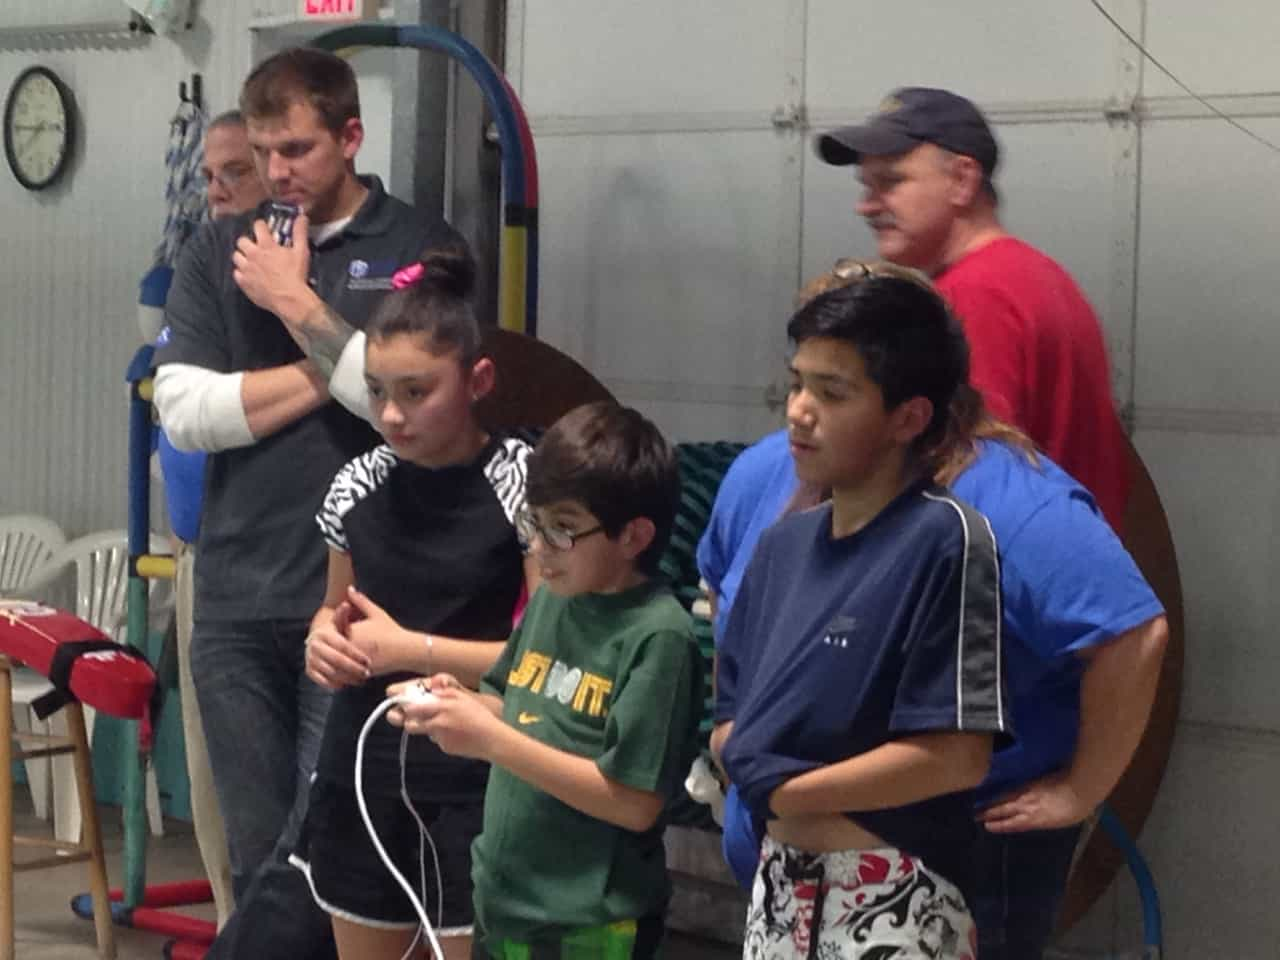 Kids watch as student uses controller to compete with SeaPerch robot